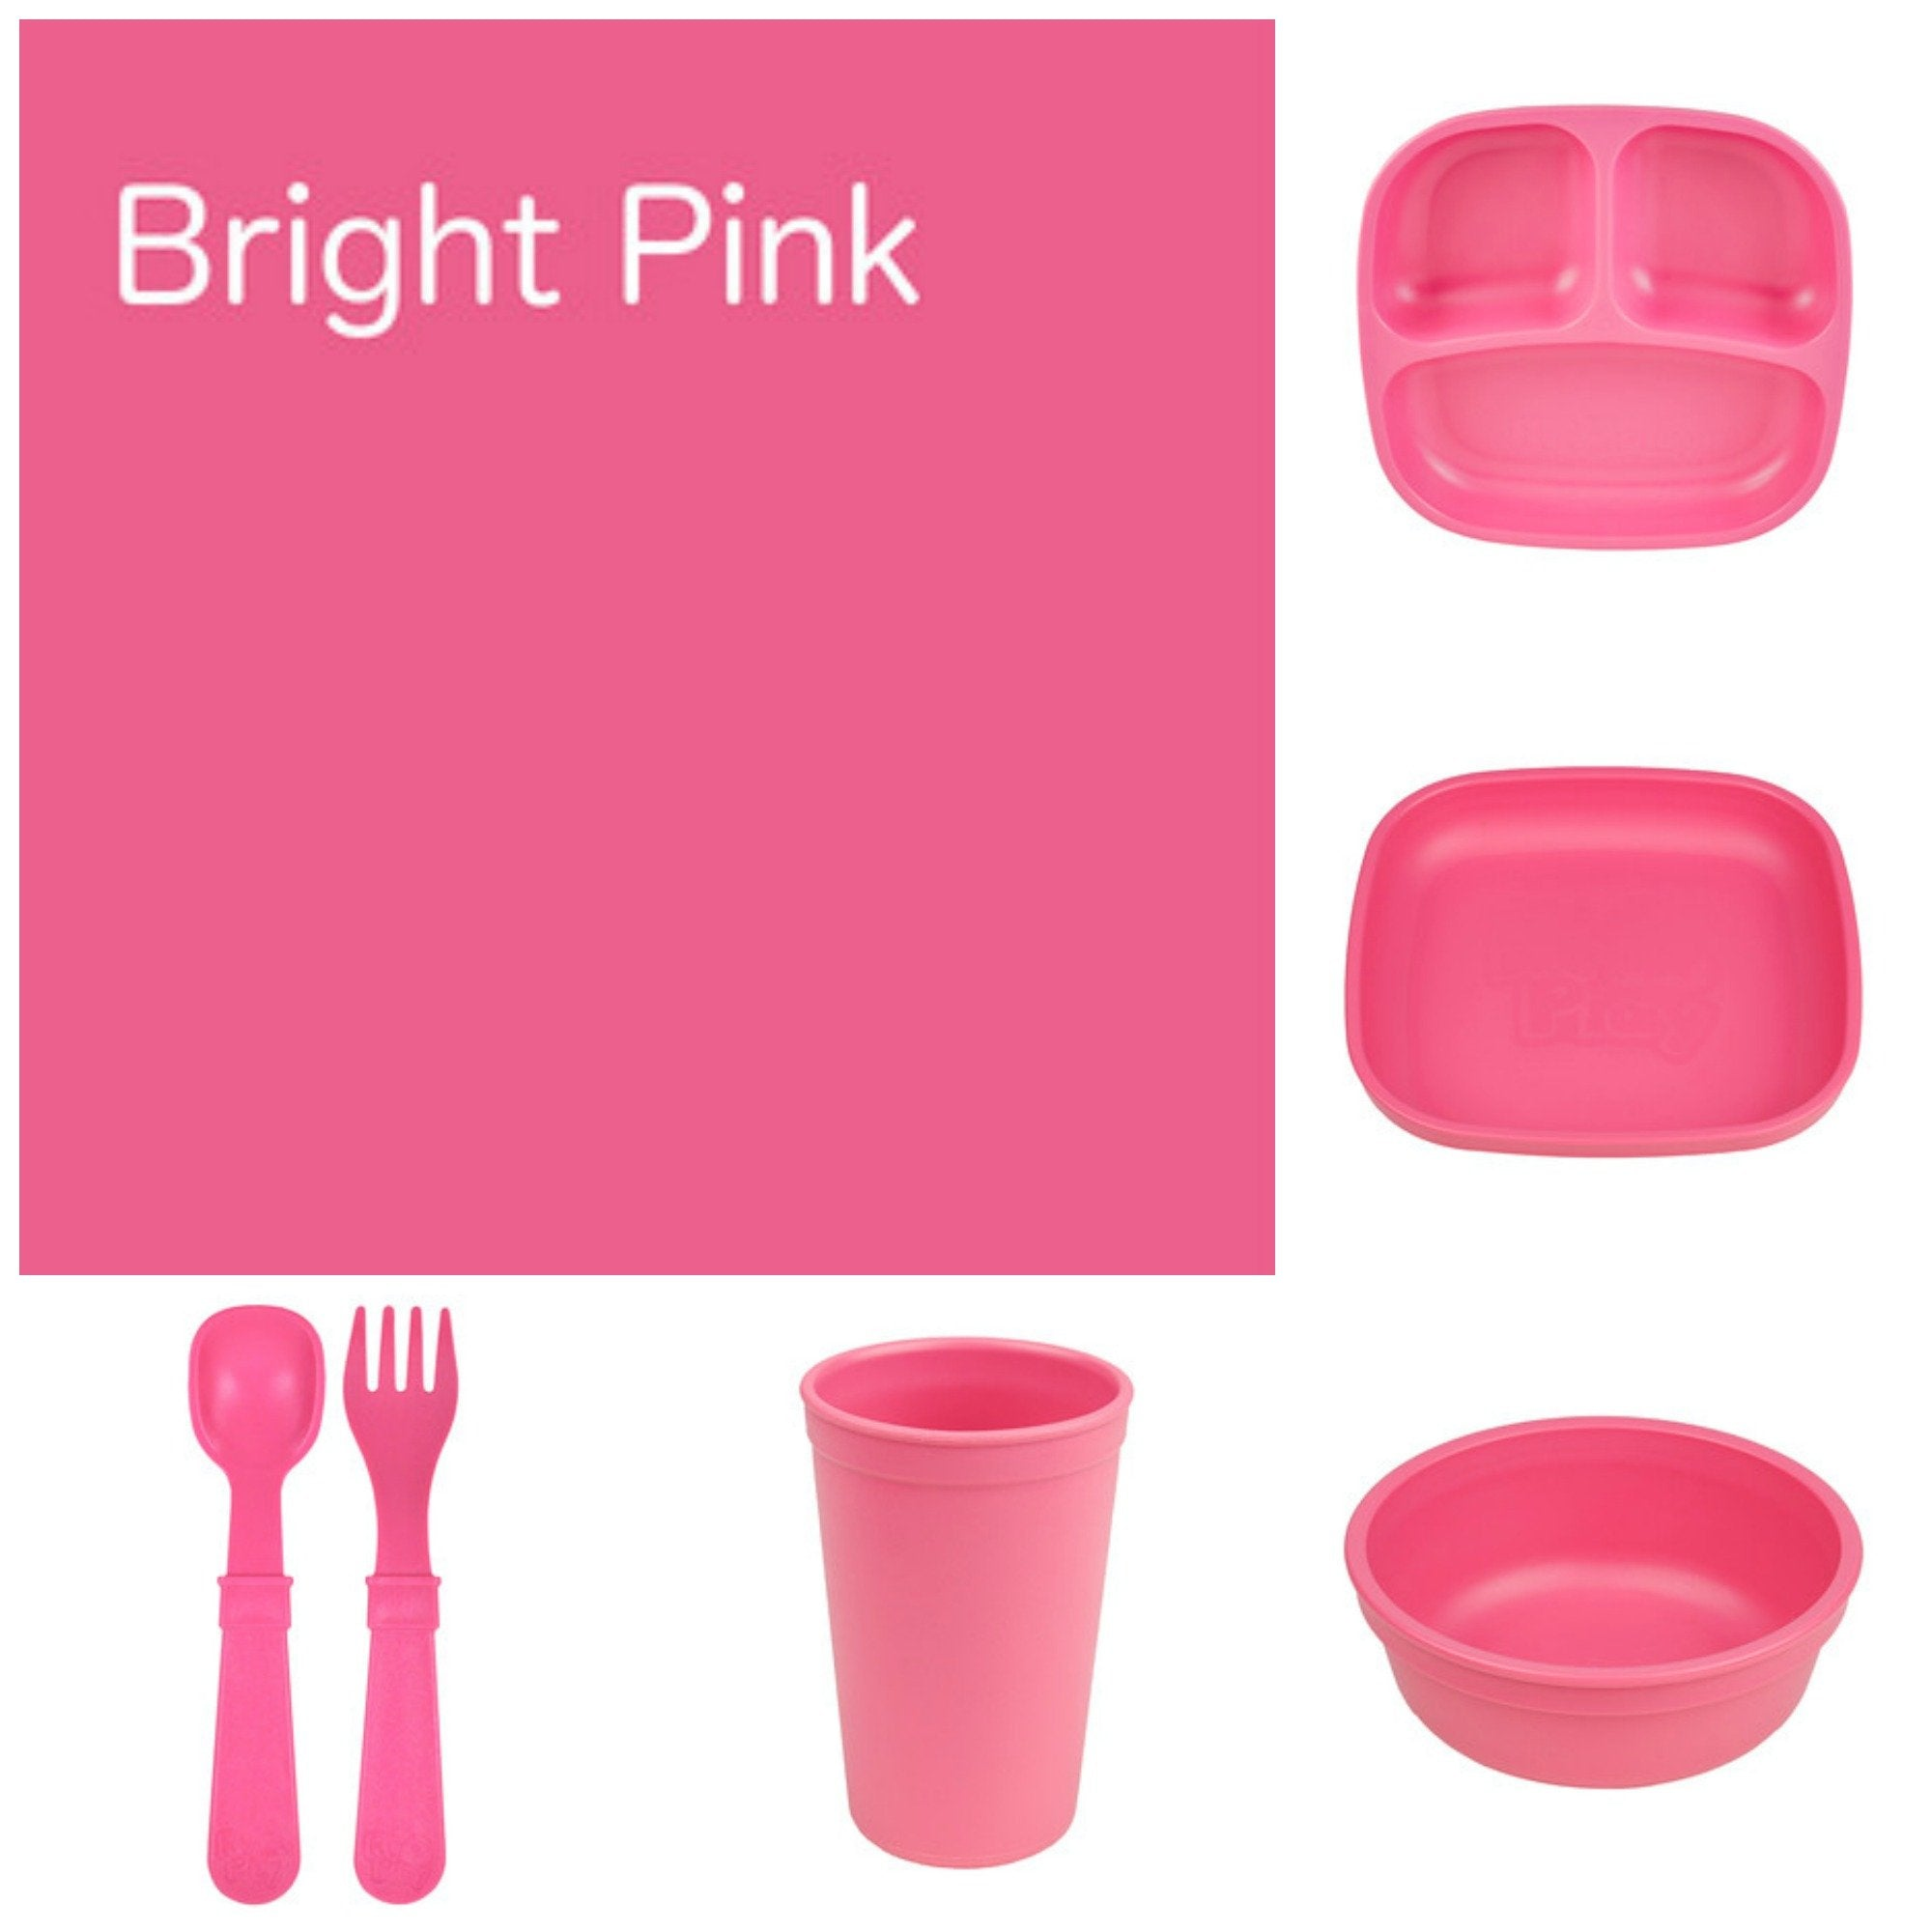 Re-Play Recycled Dinner Set - Bright Pink